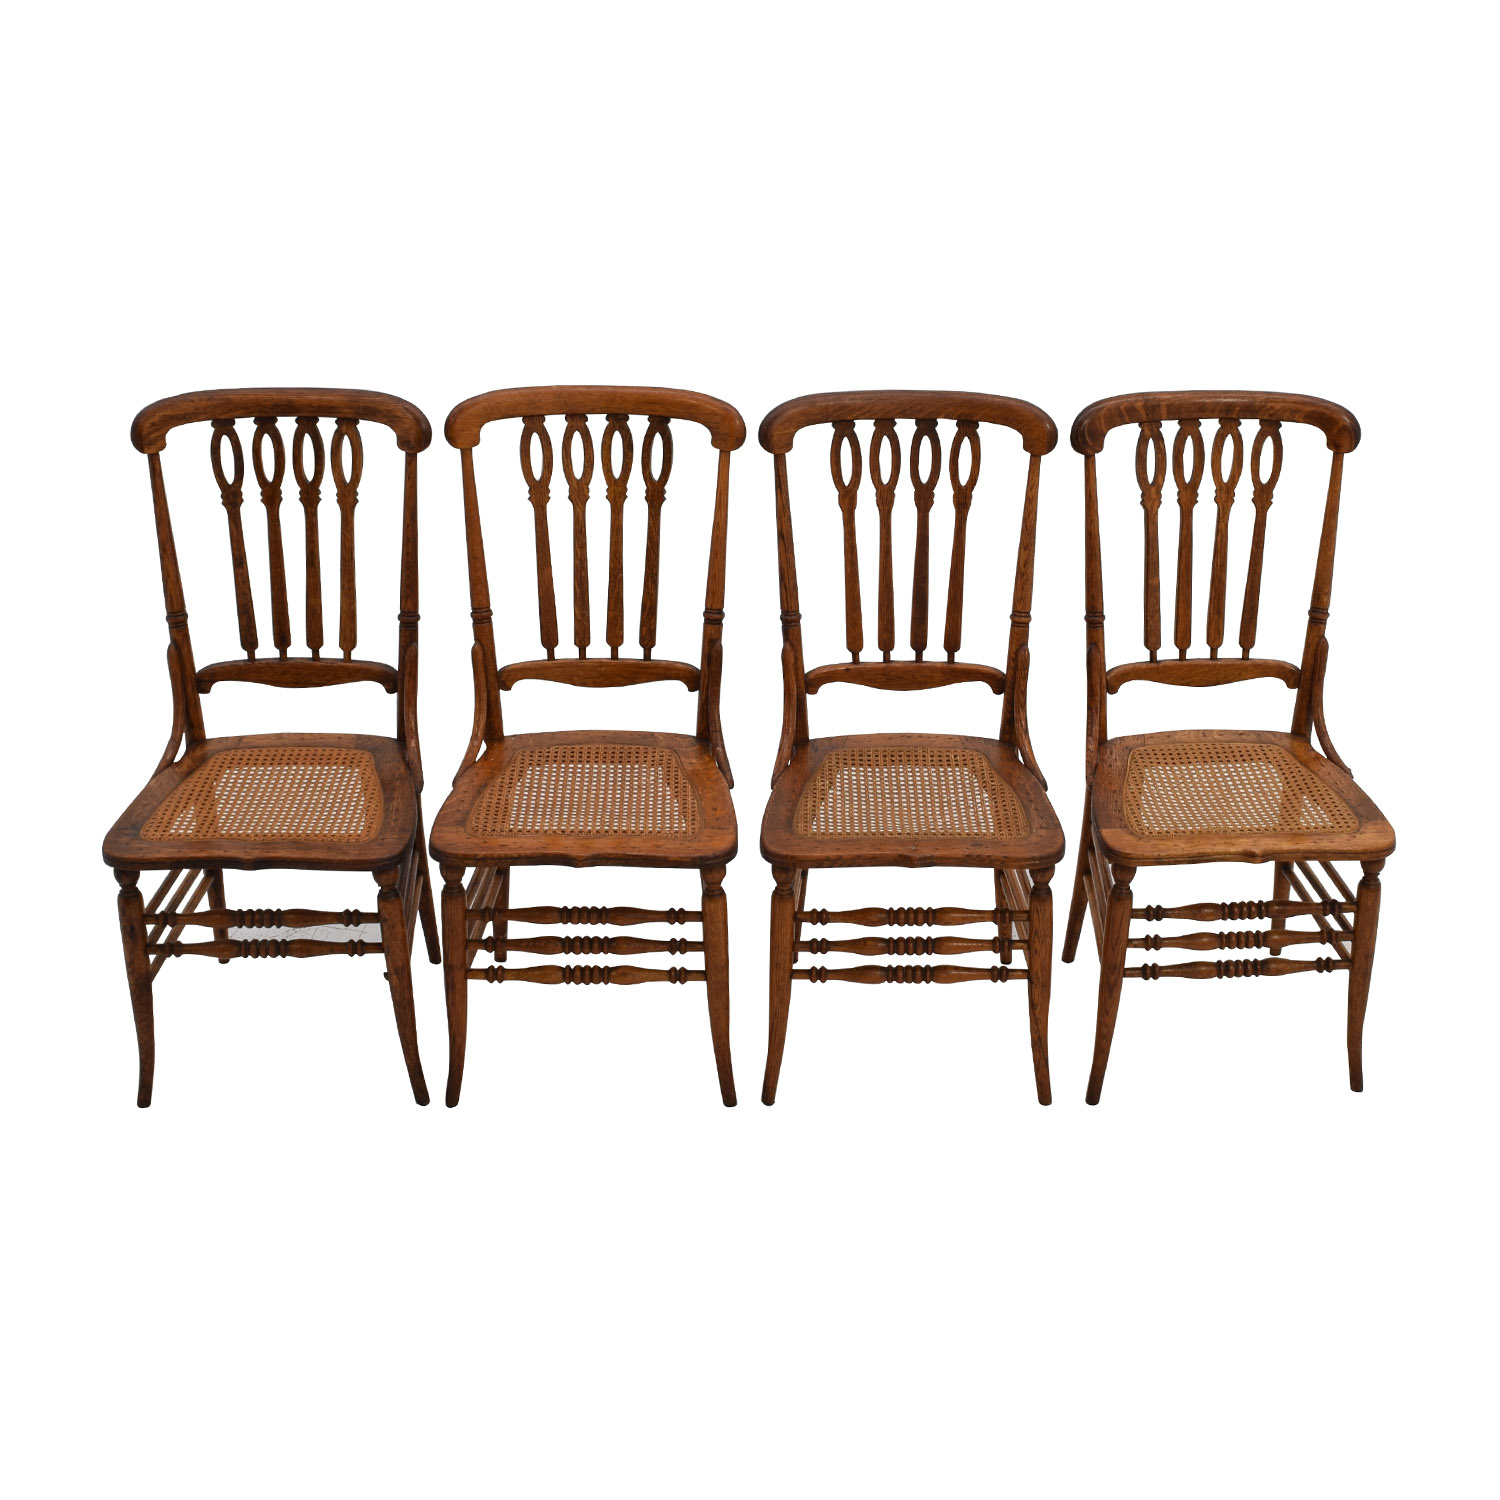 Antique Cane Weaved Wood Dining Chairs discount